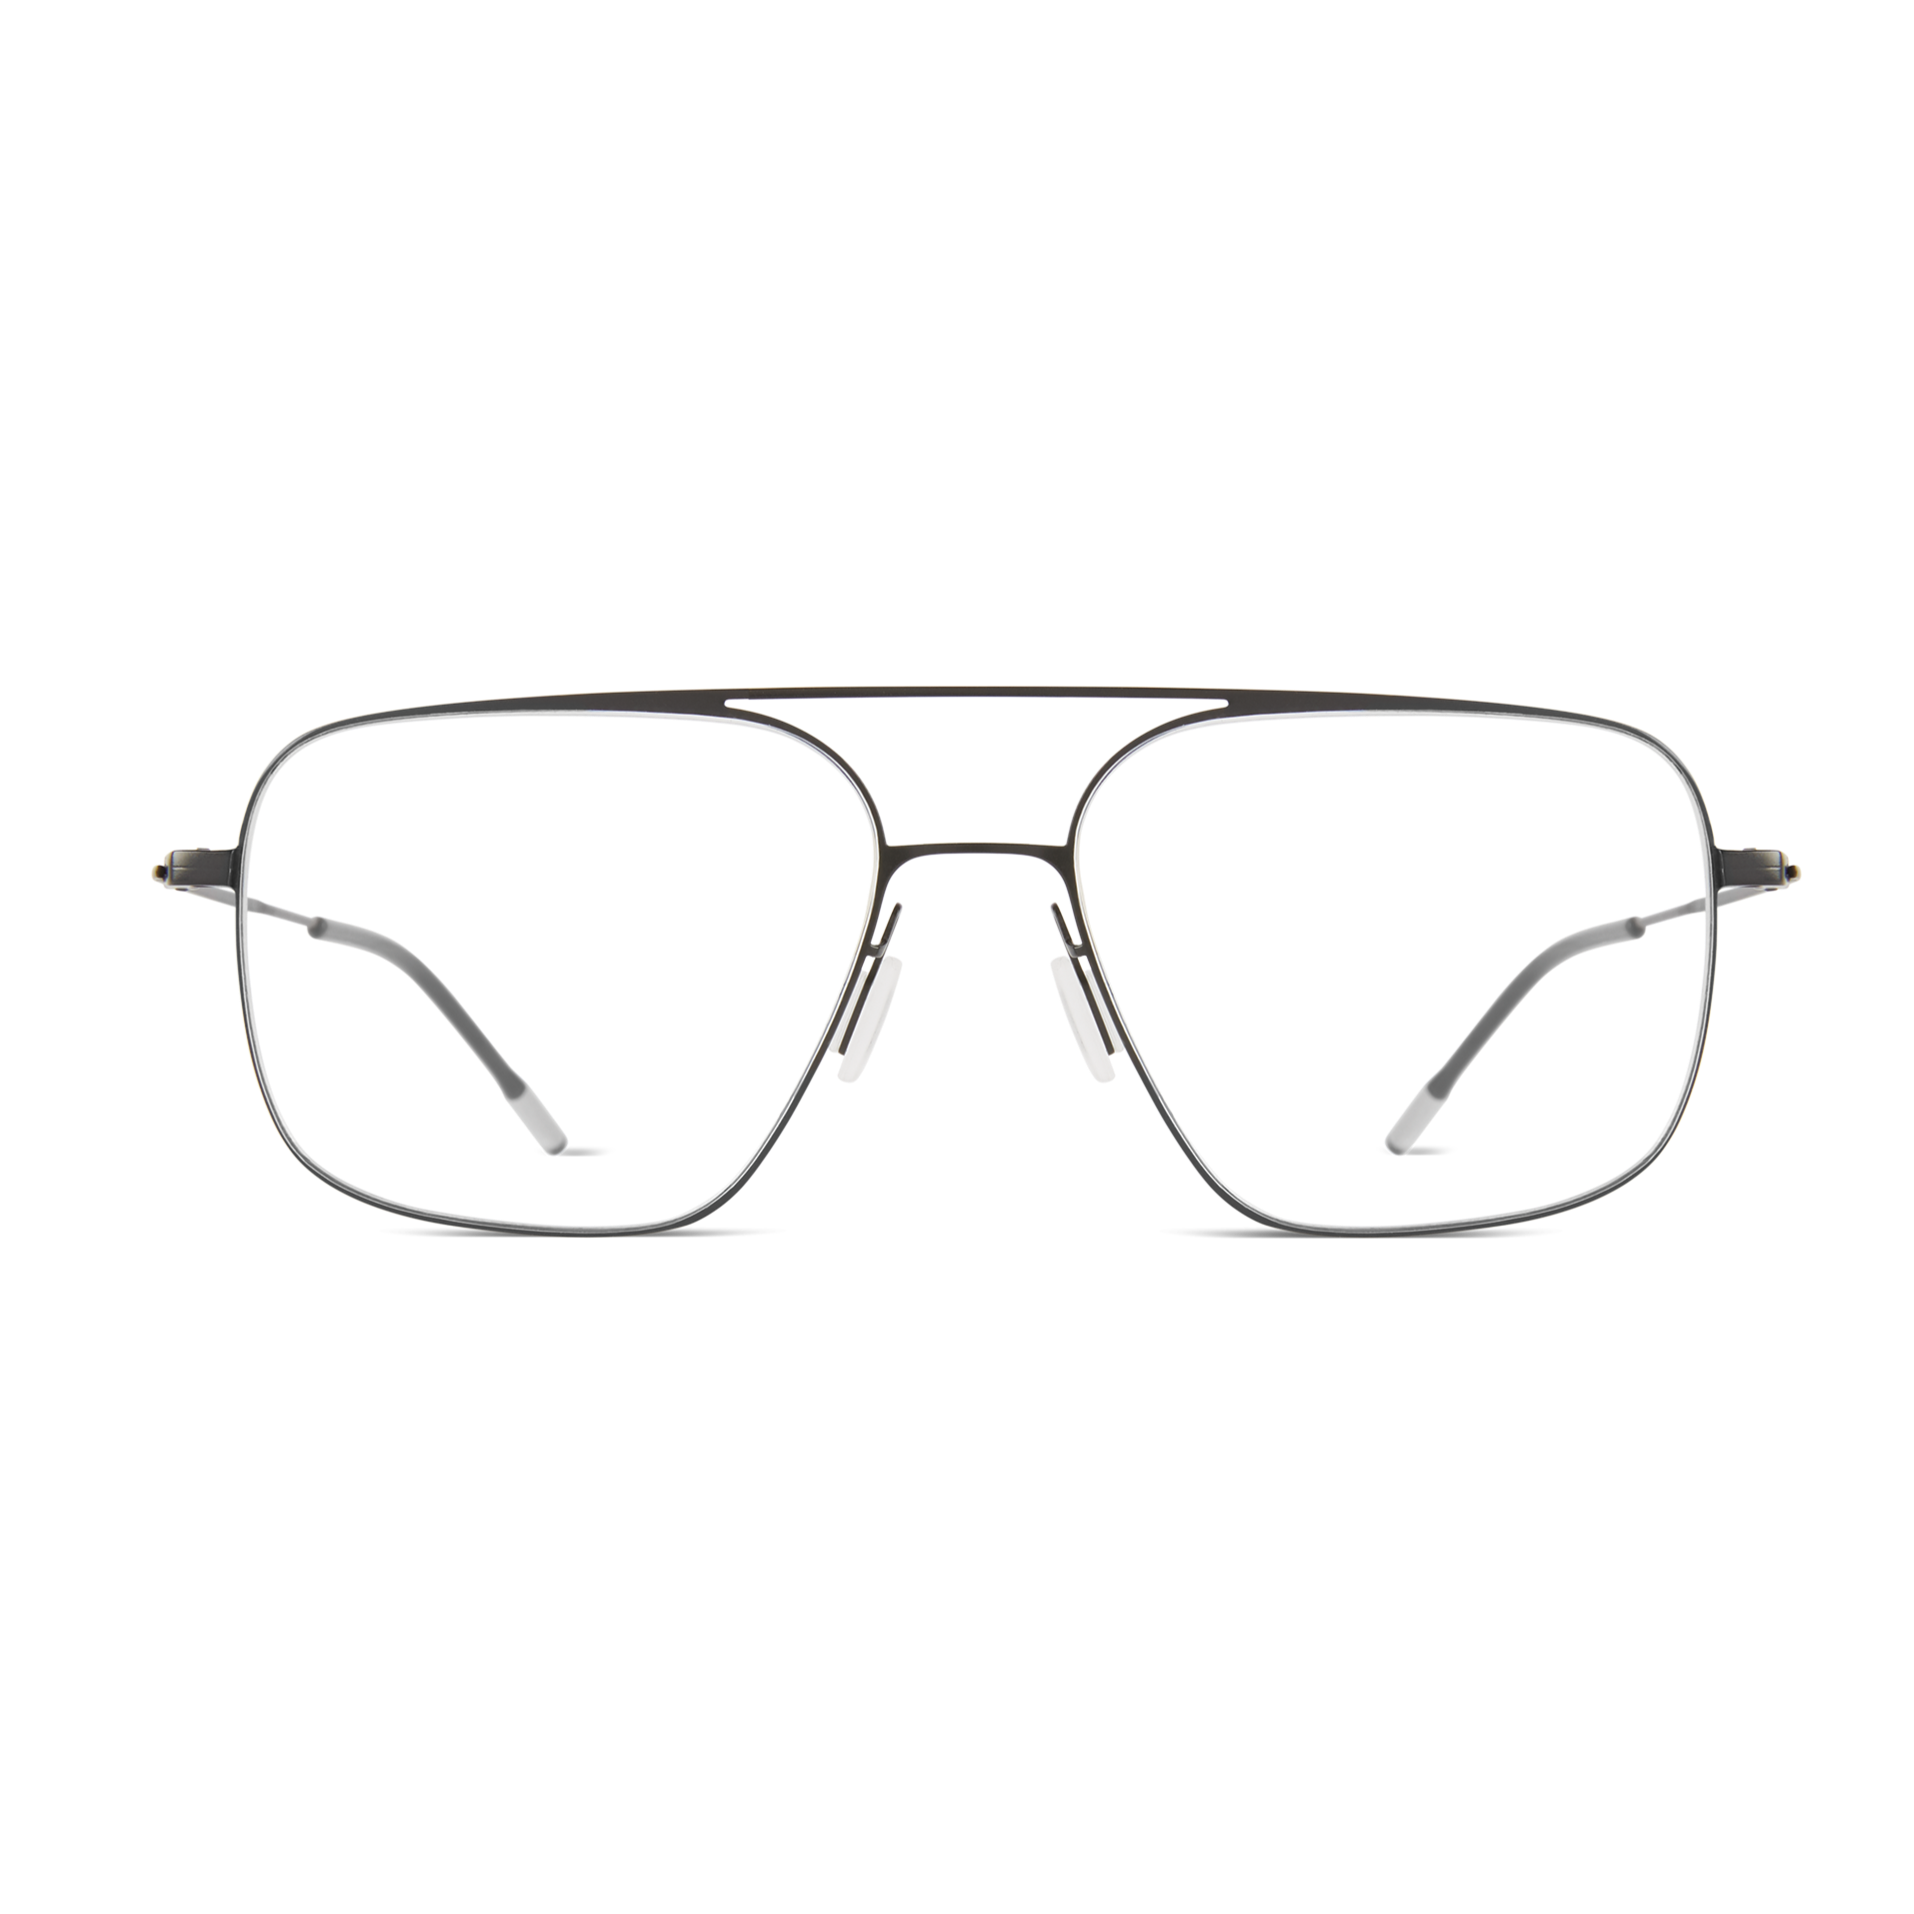 EDDIE / BLACK / OPTICAL FRAMES